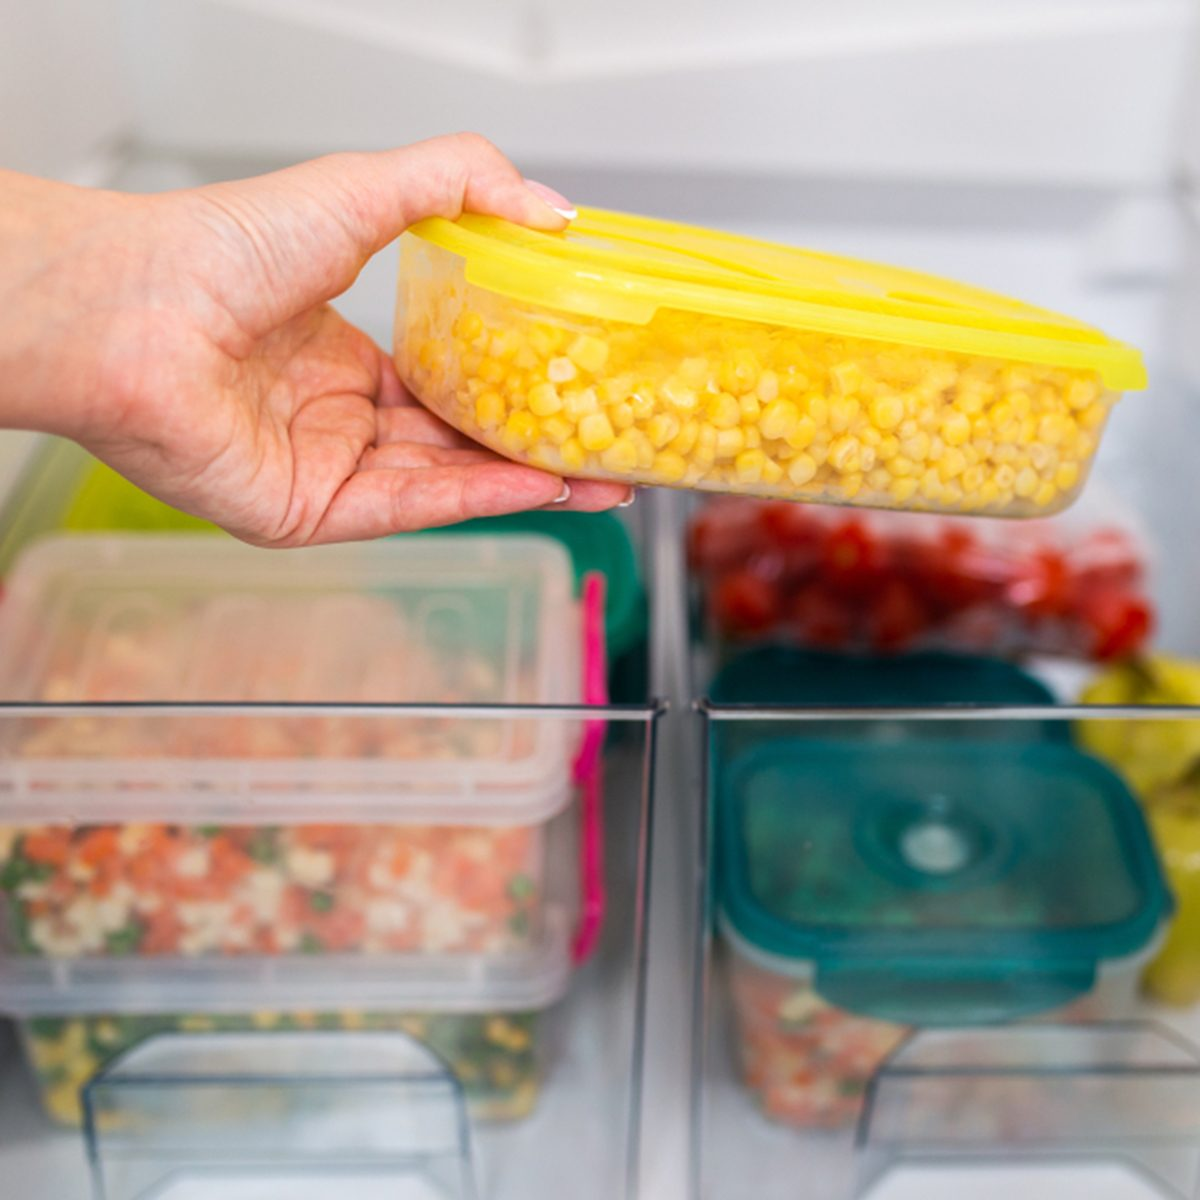 Woman taking container with frozen corn from refrigerator.; Shutterstock ID 1154258860; Job (TFH, TOH, RD, BNB, CWM, CM): TOH